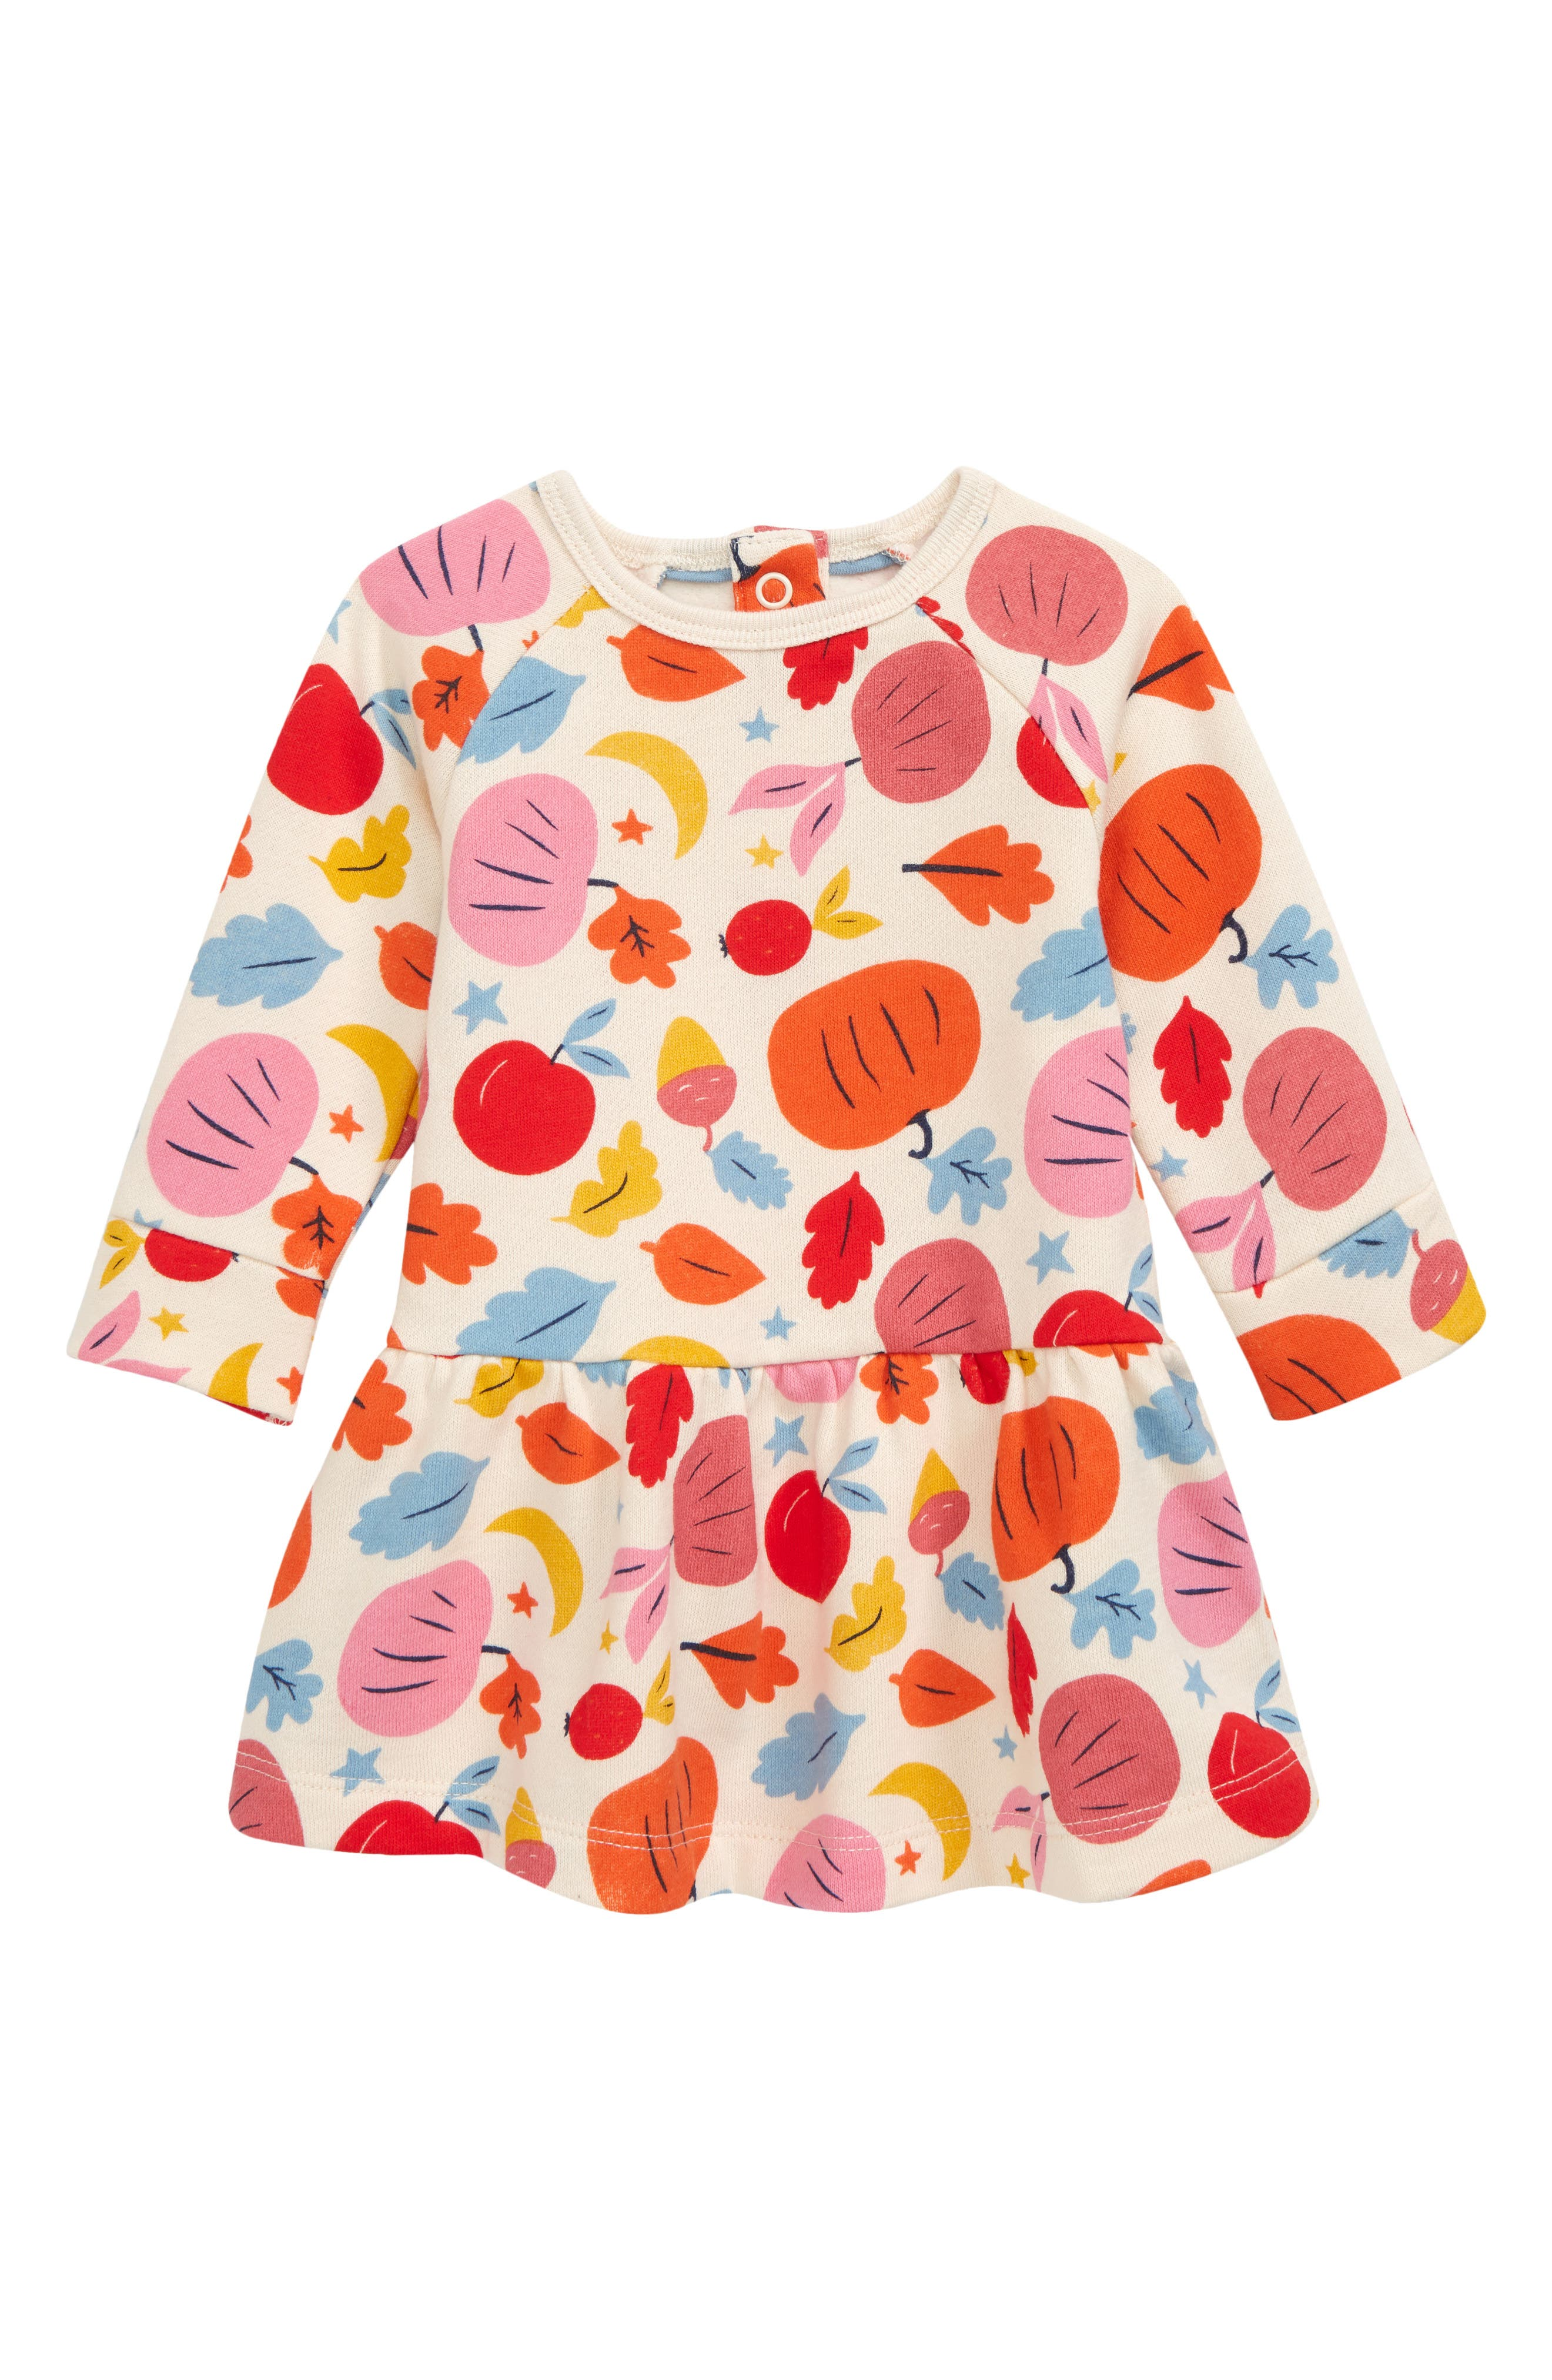 Baby will feel festive for fall in a colorful rib-trimmed dress cut from cotton-blend jersey and perfect for layering. Style Name: Mini Boden Print Jersey Dress (Baby). Style Number: 6096417. Available in stores.